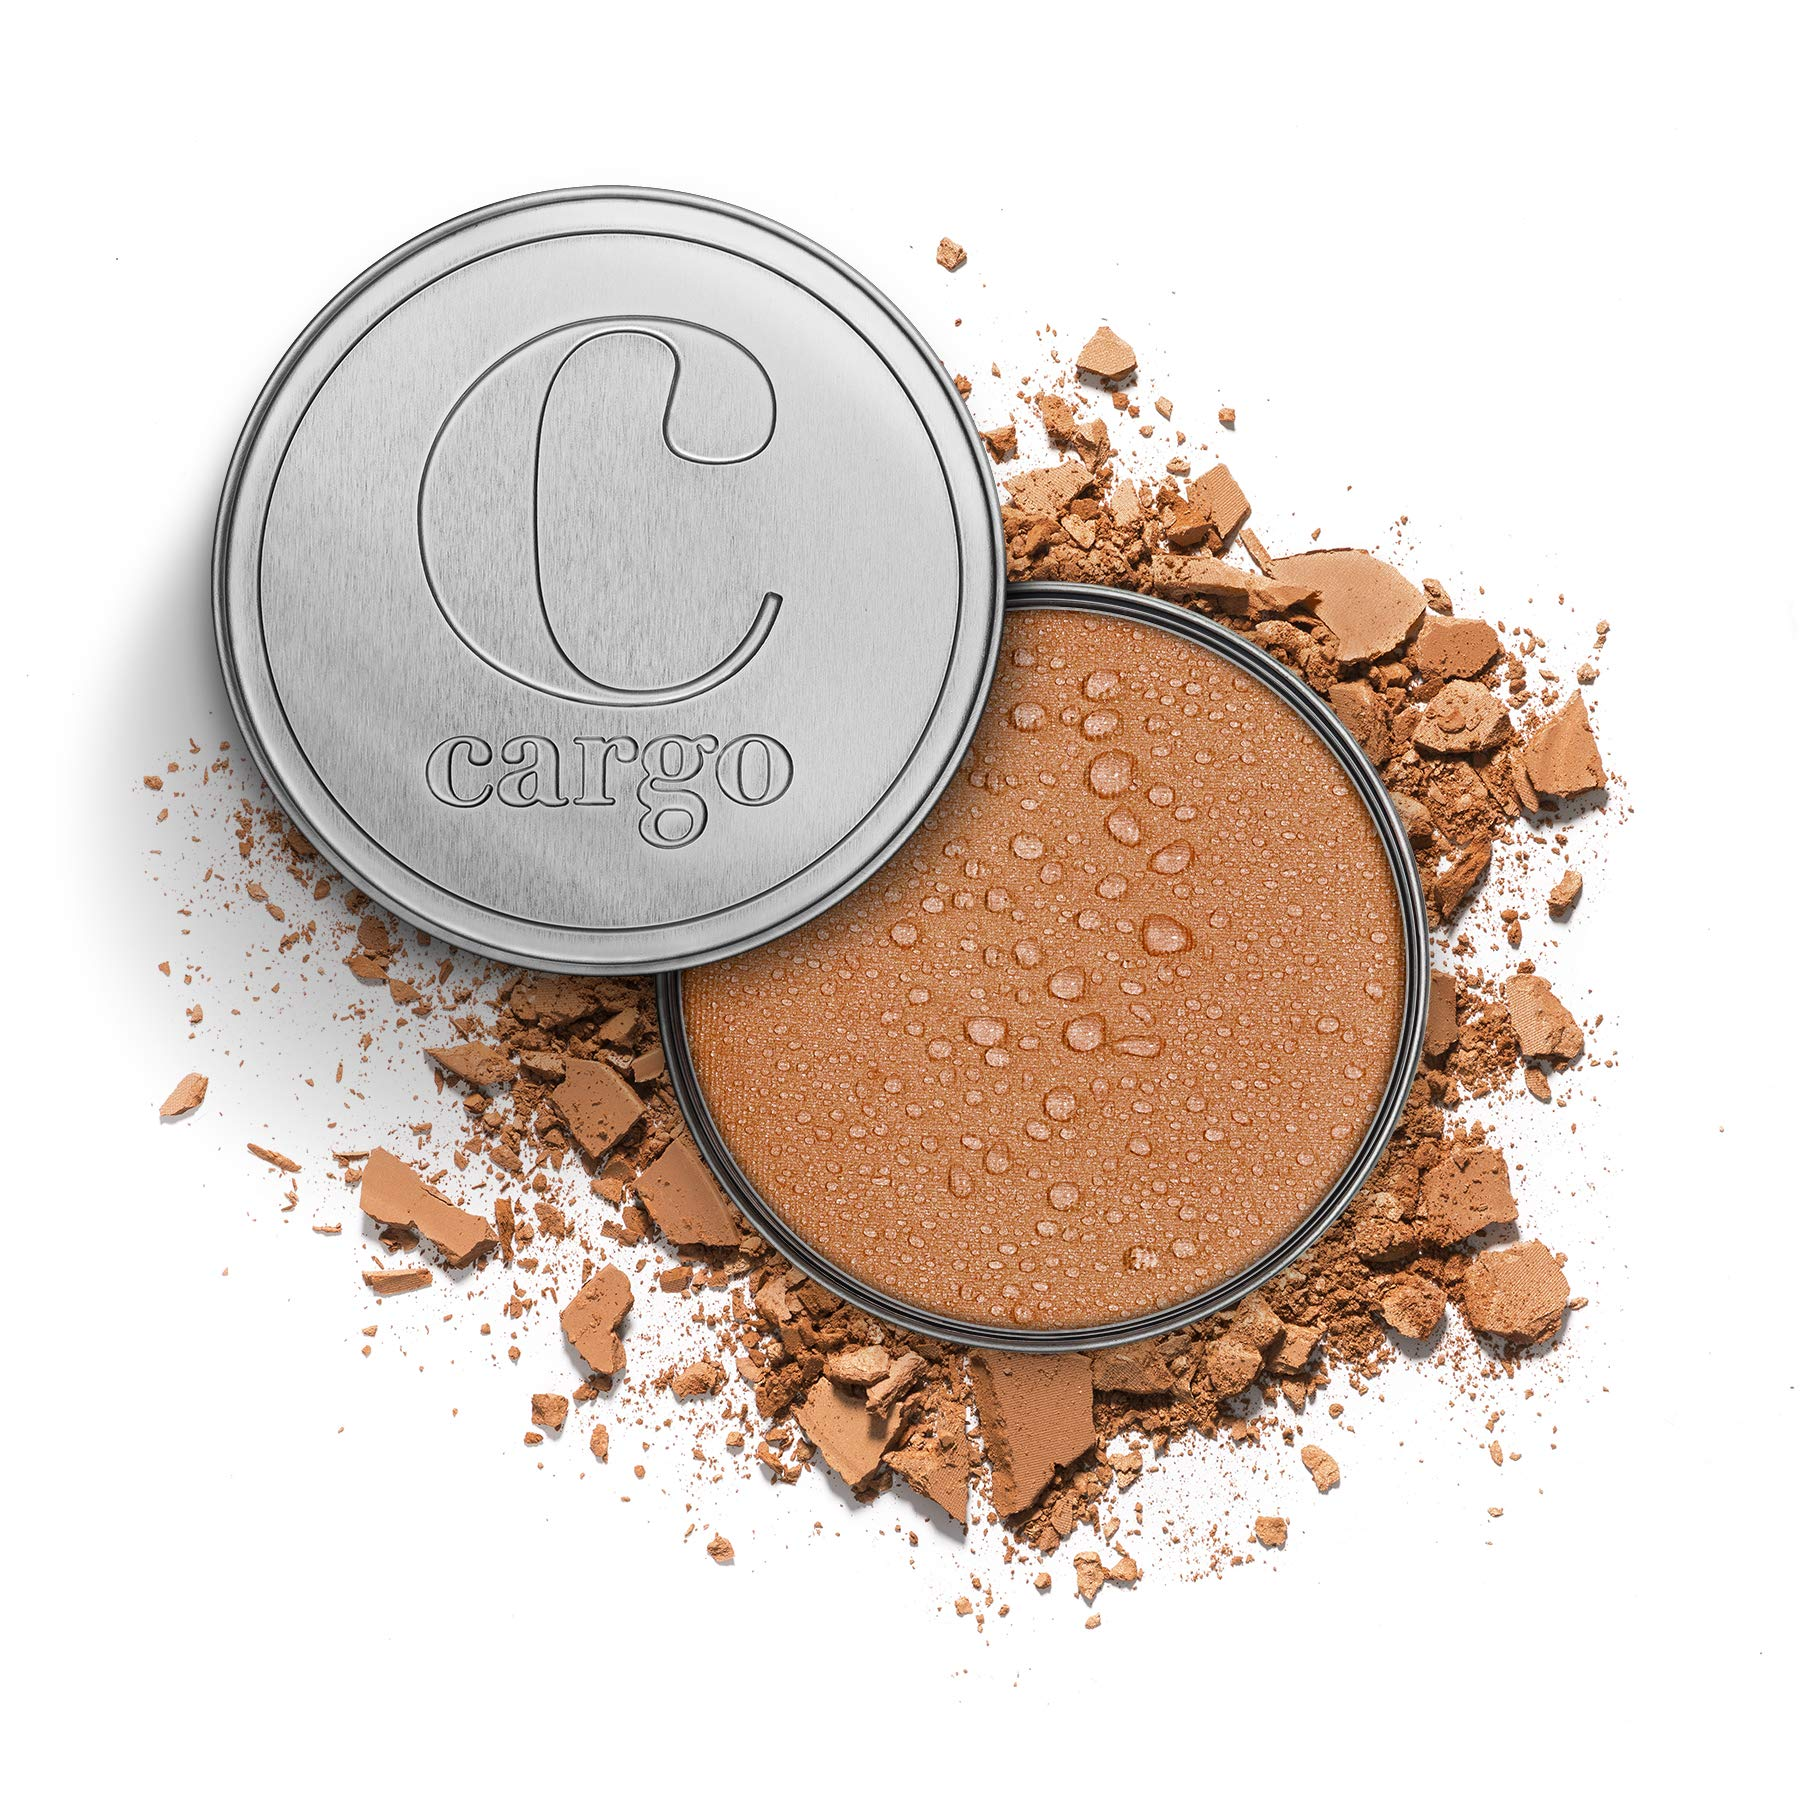 Cargo Cosmetics - Swimmables Longwear Bronzer, High Pigment, Buildable, Blendable, Water Resistant Bronzer